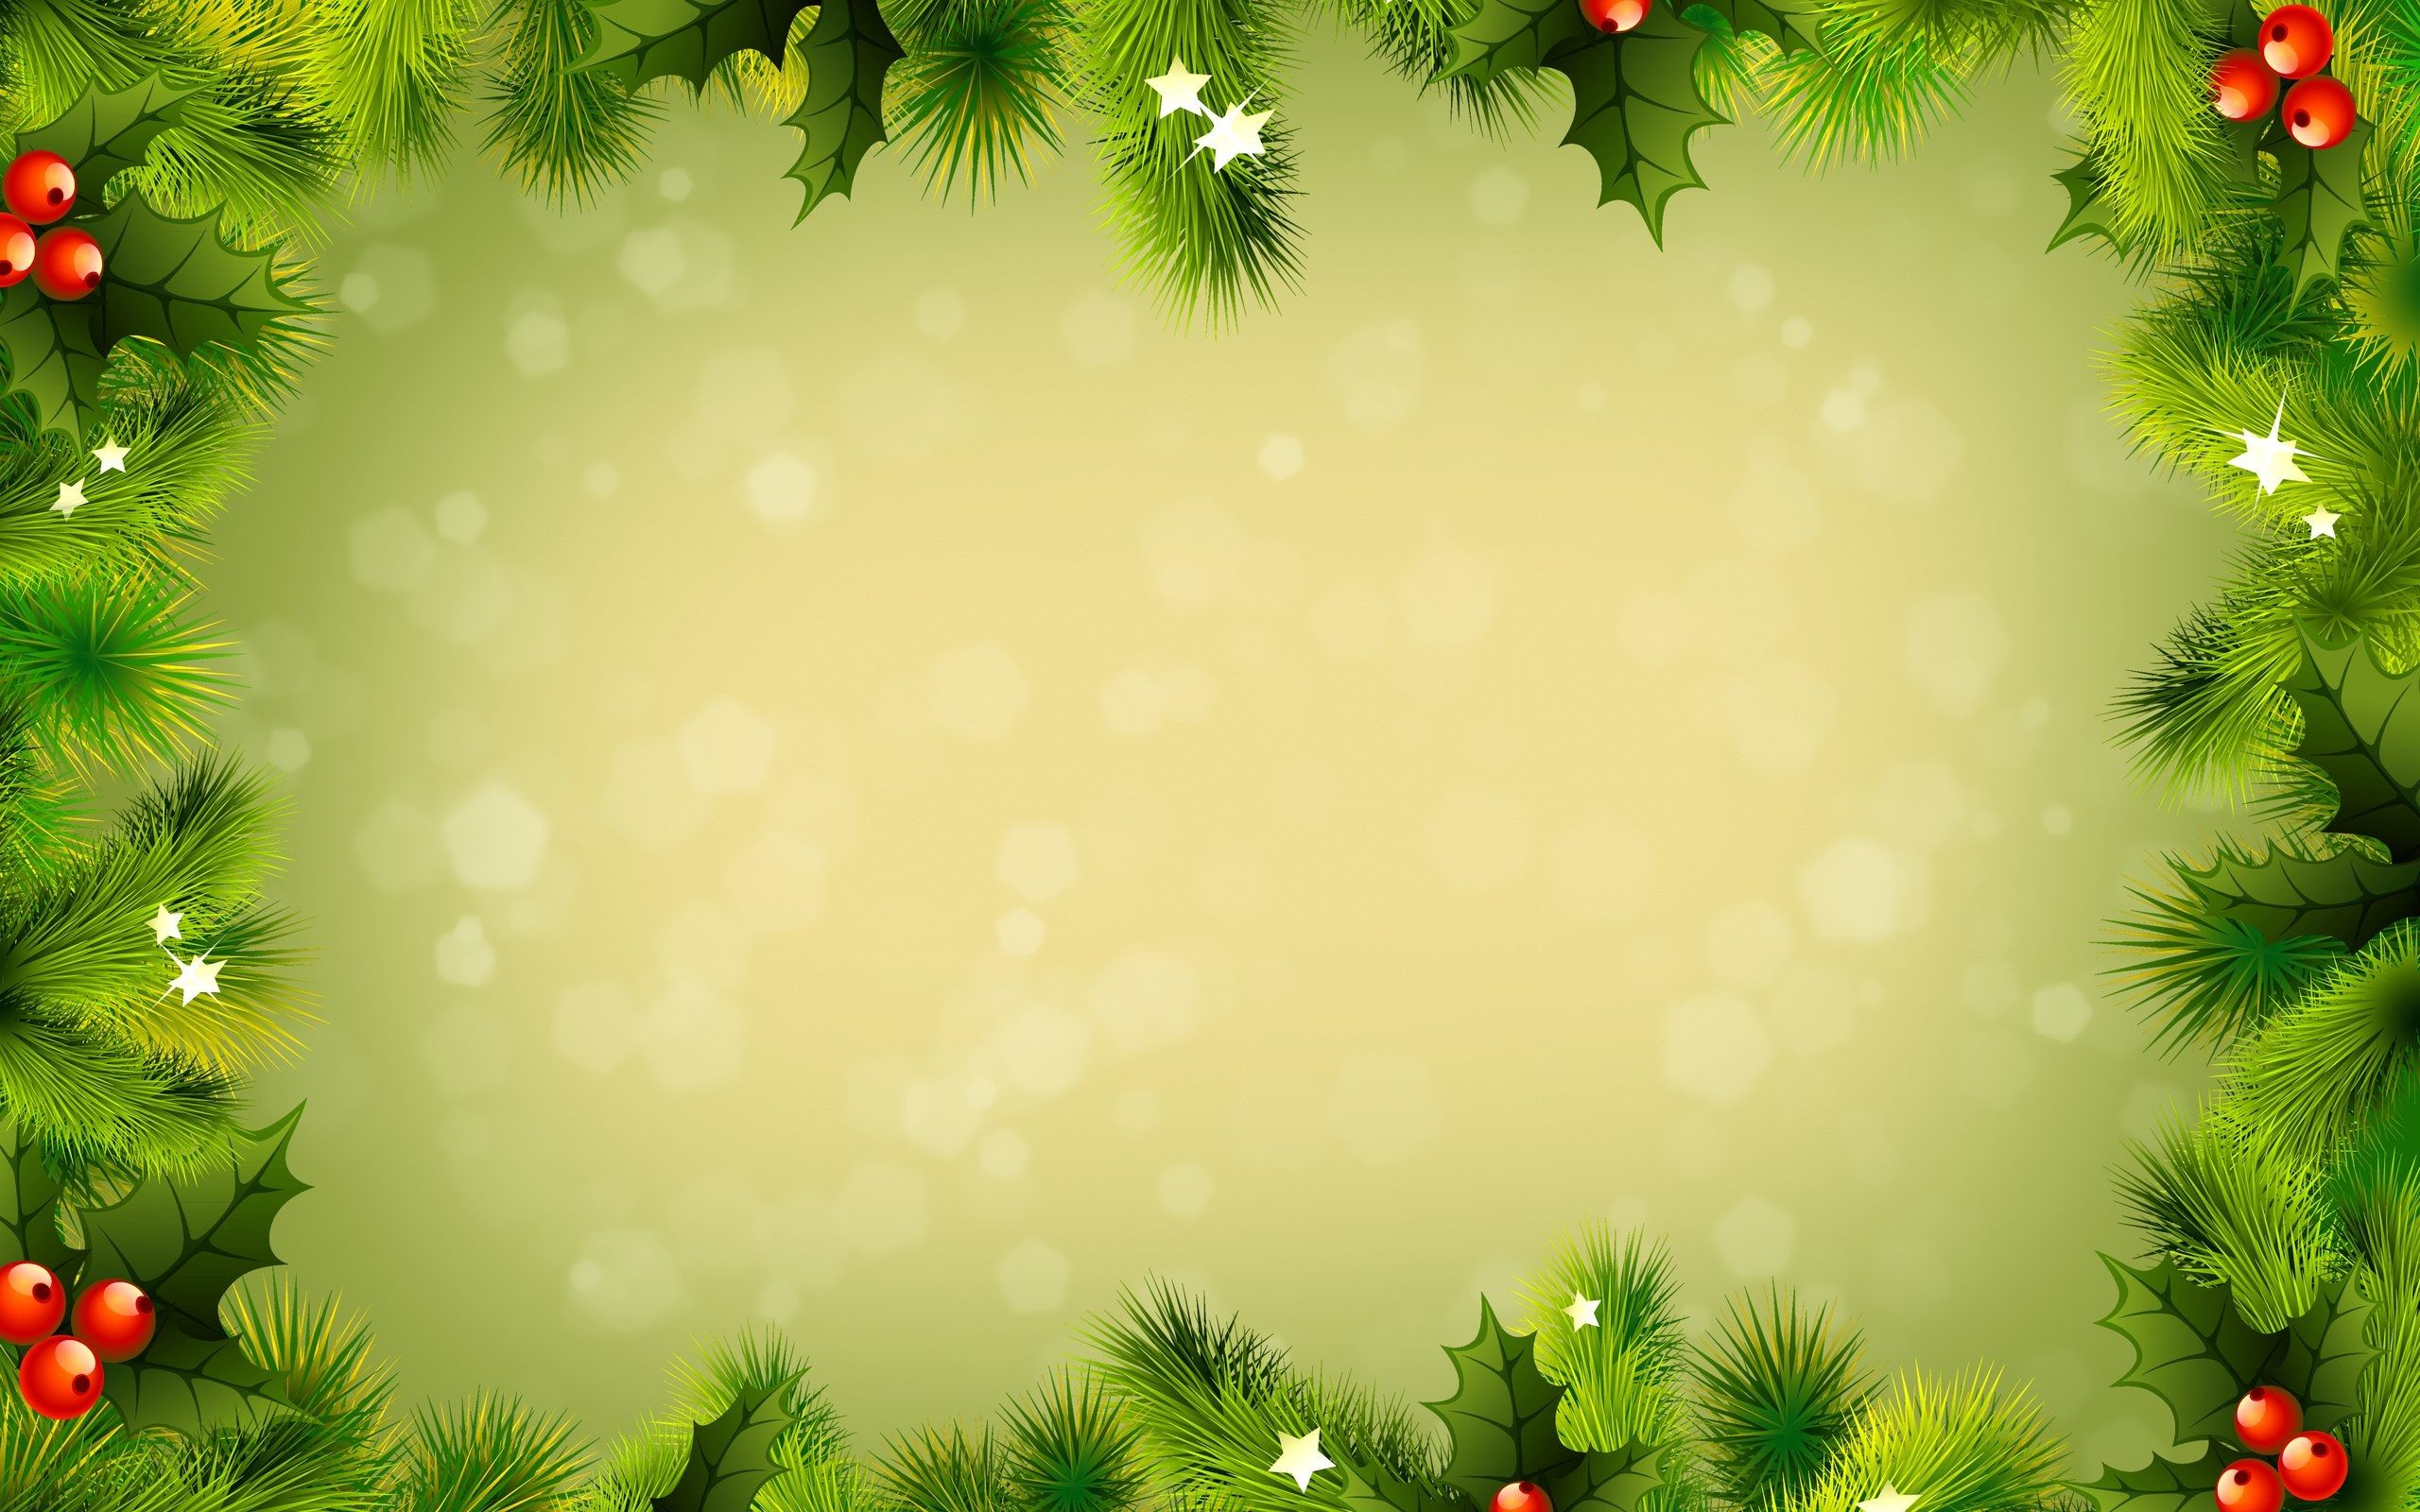 christmas background free large images graphic design